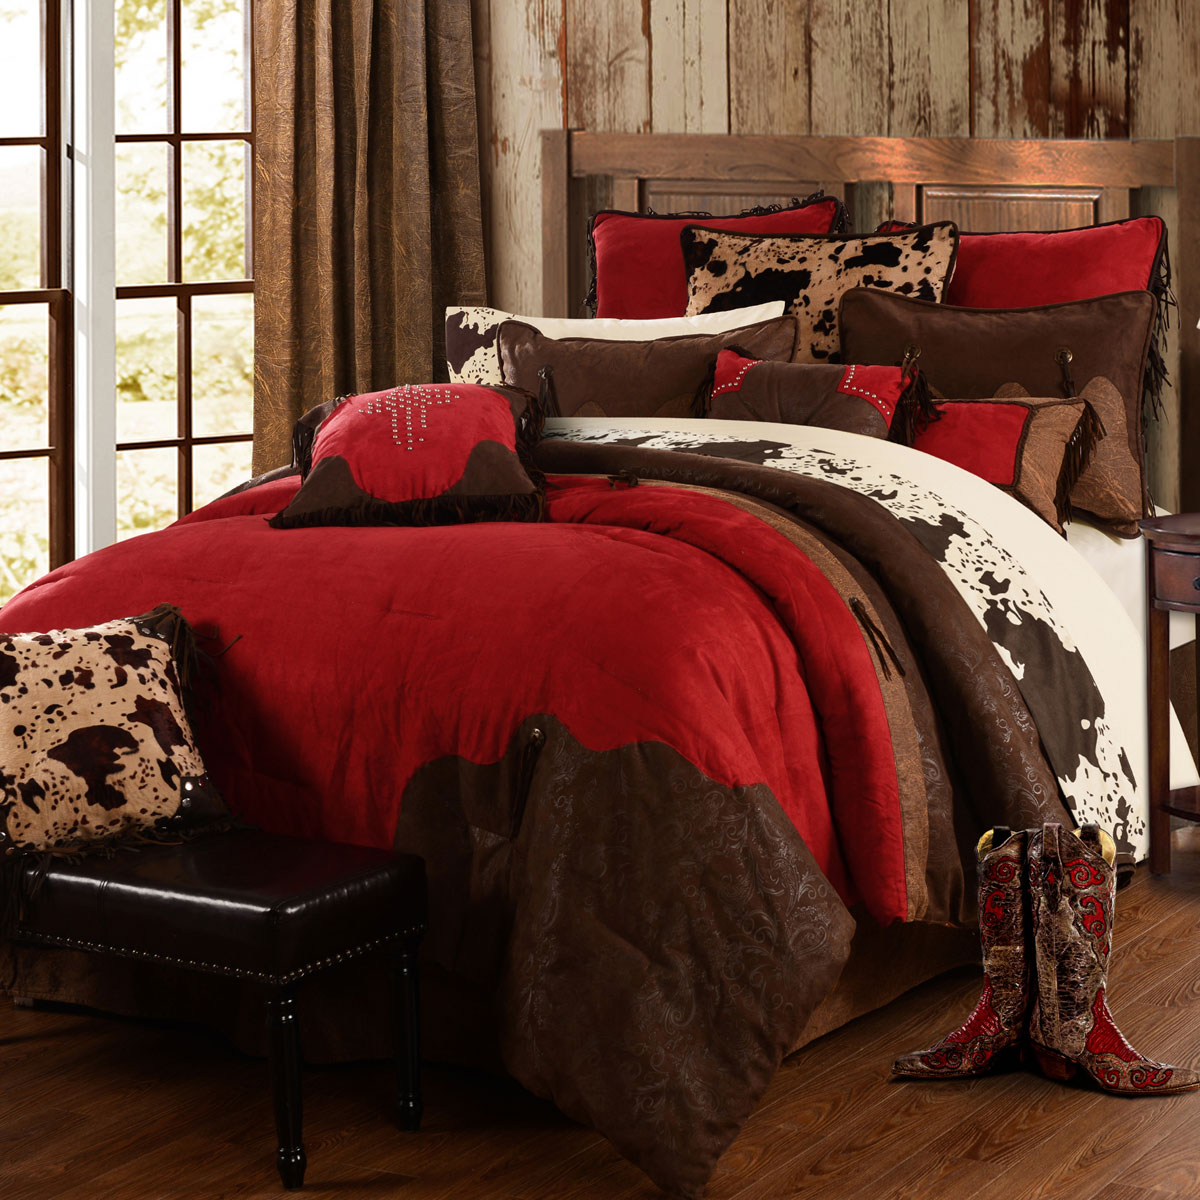 Western Bedding: King Size Red Rodeo Bed Set|Lone Star Western Decor